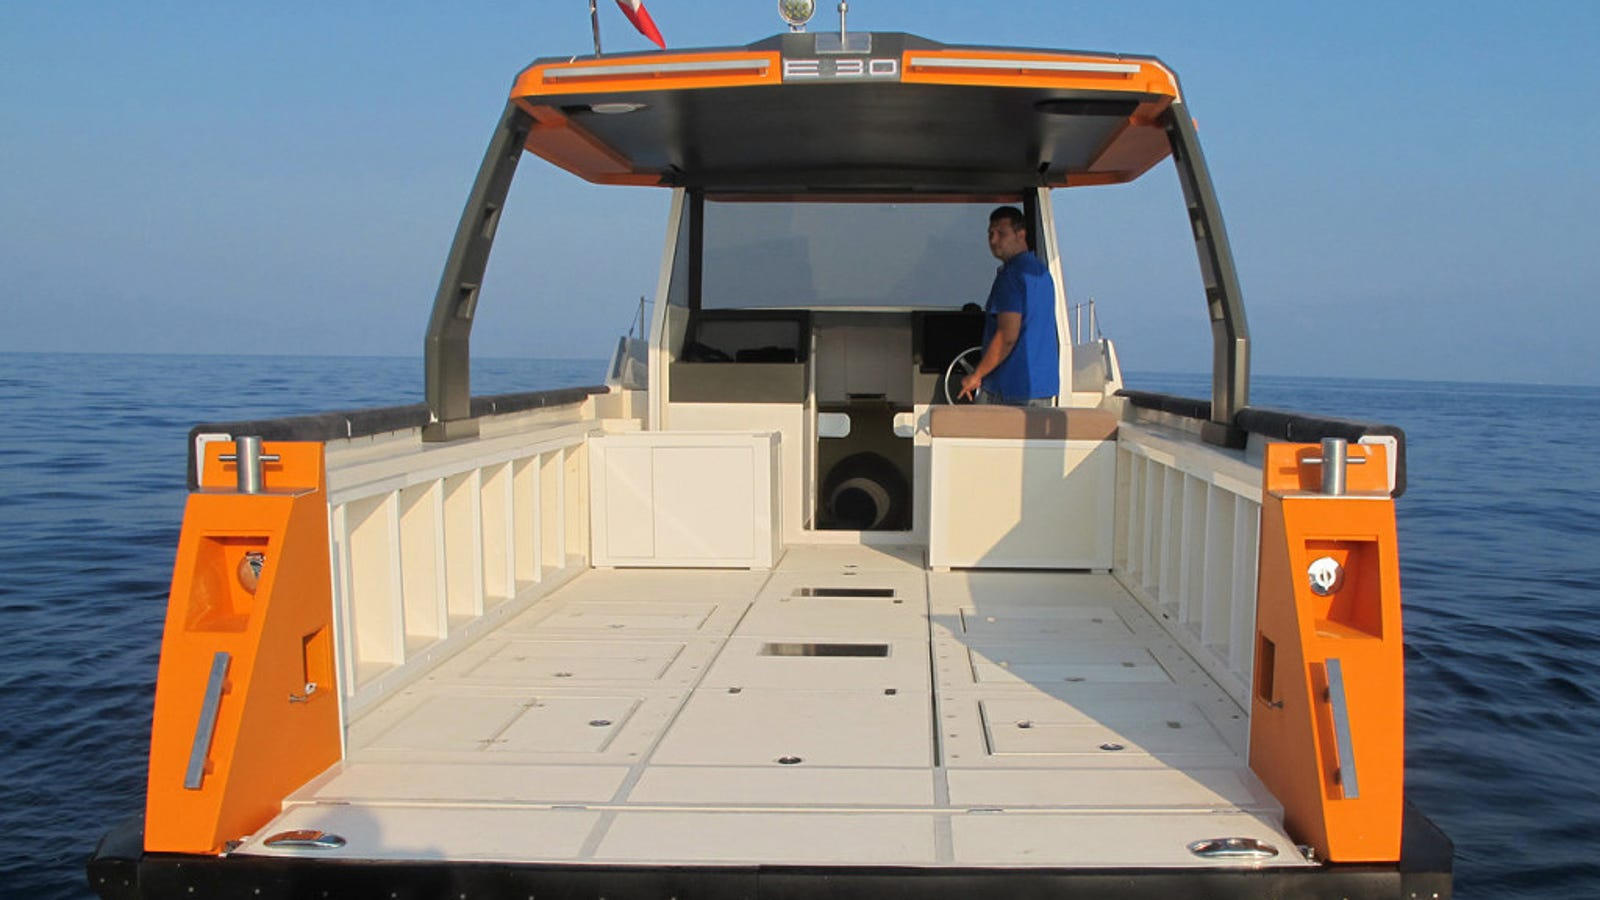 A Modular Boat You Can Reconfigure For Work or Play